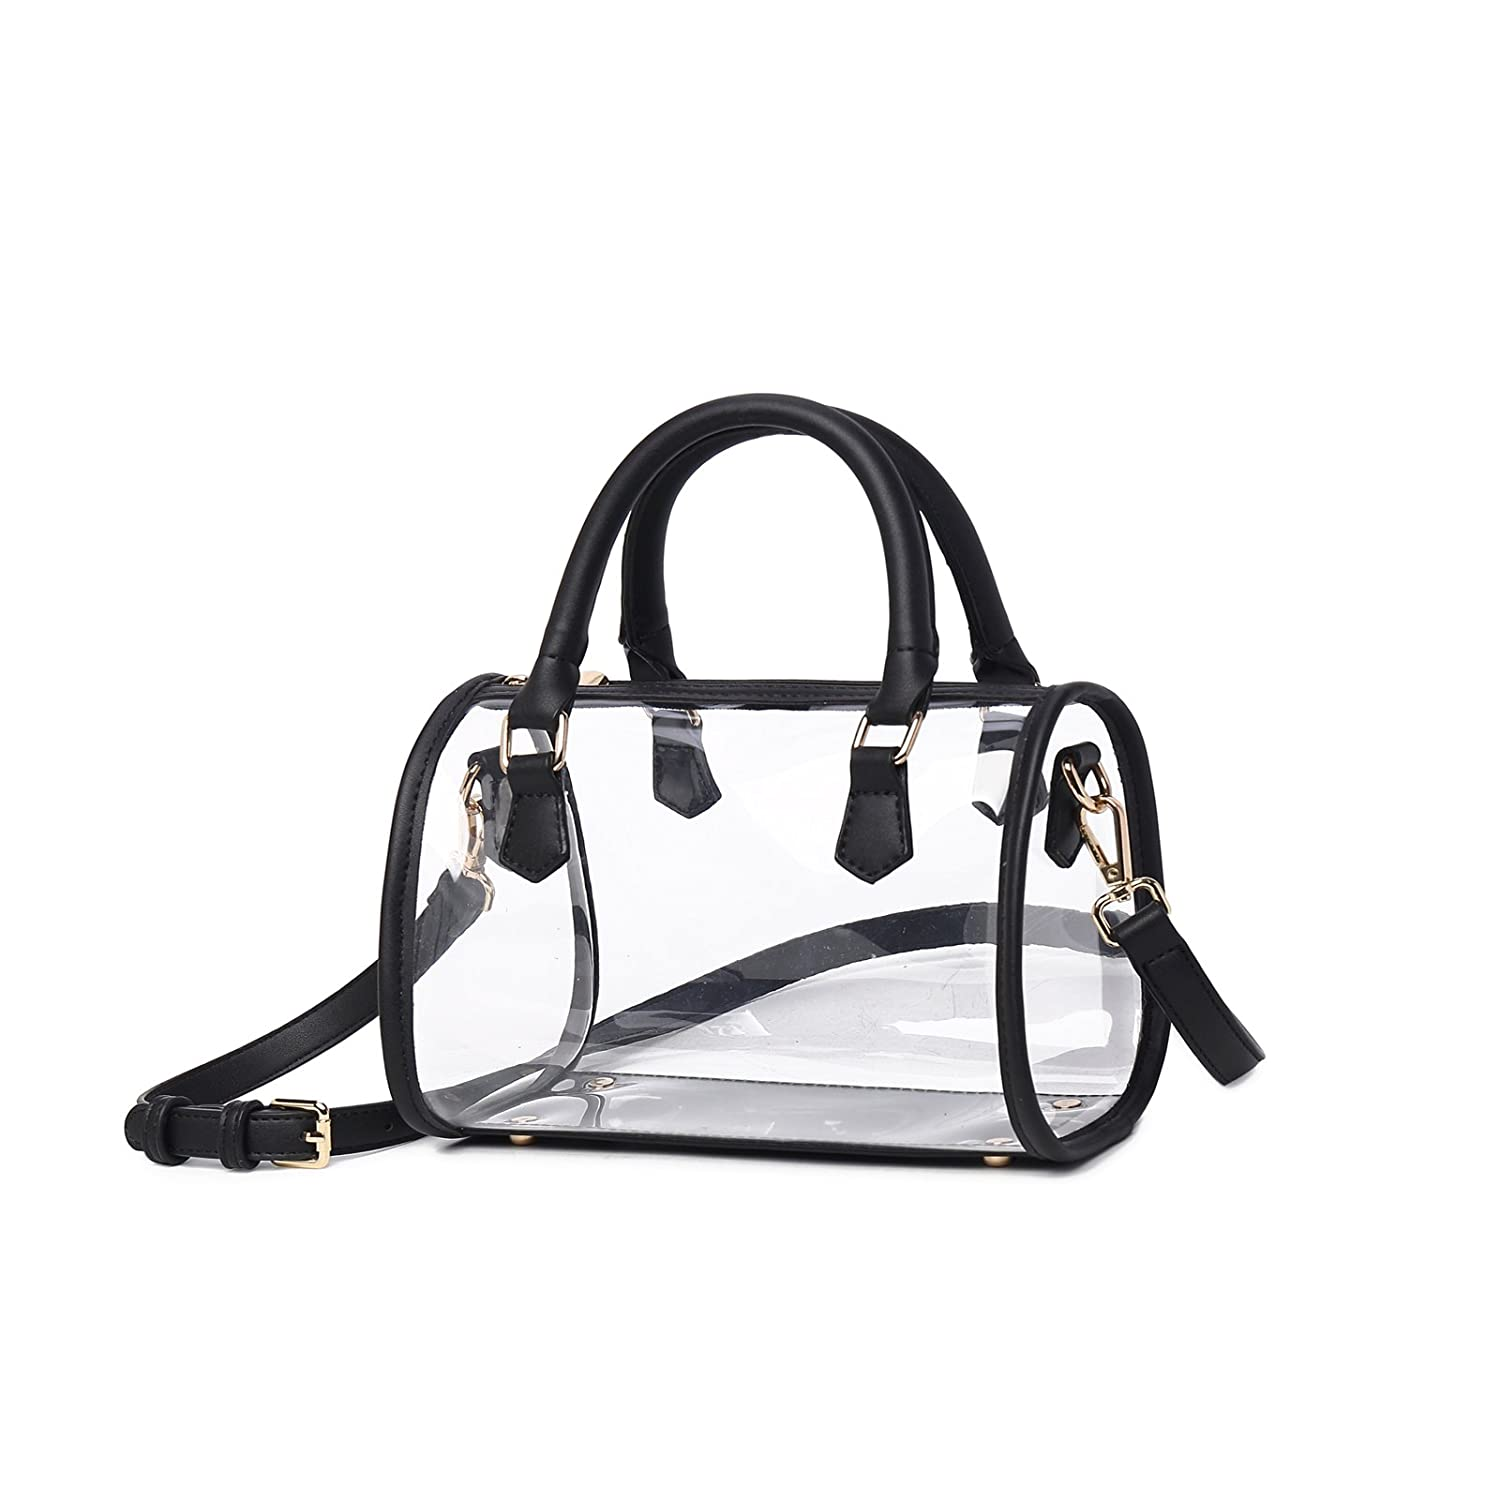 f9dbbbcbb6b2b8 Lam Gallery Womens Clear Purse Transparent Handbags for Work Concert NFL  Stadium Approved Clear Bags See Through PVC Plastic Bag Top Handle  Satchel(Black ...